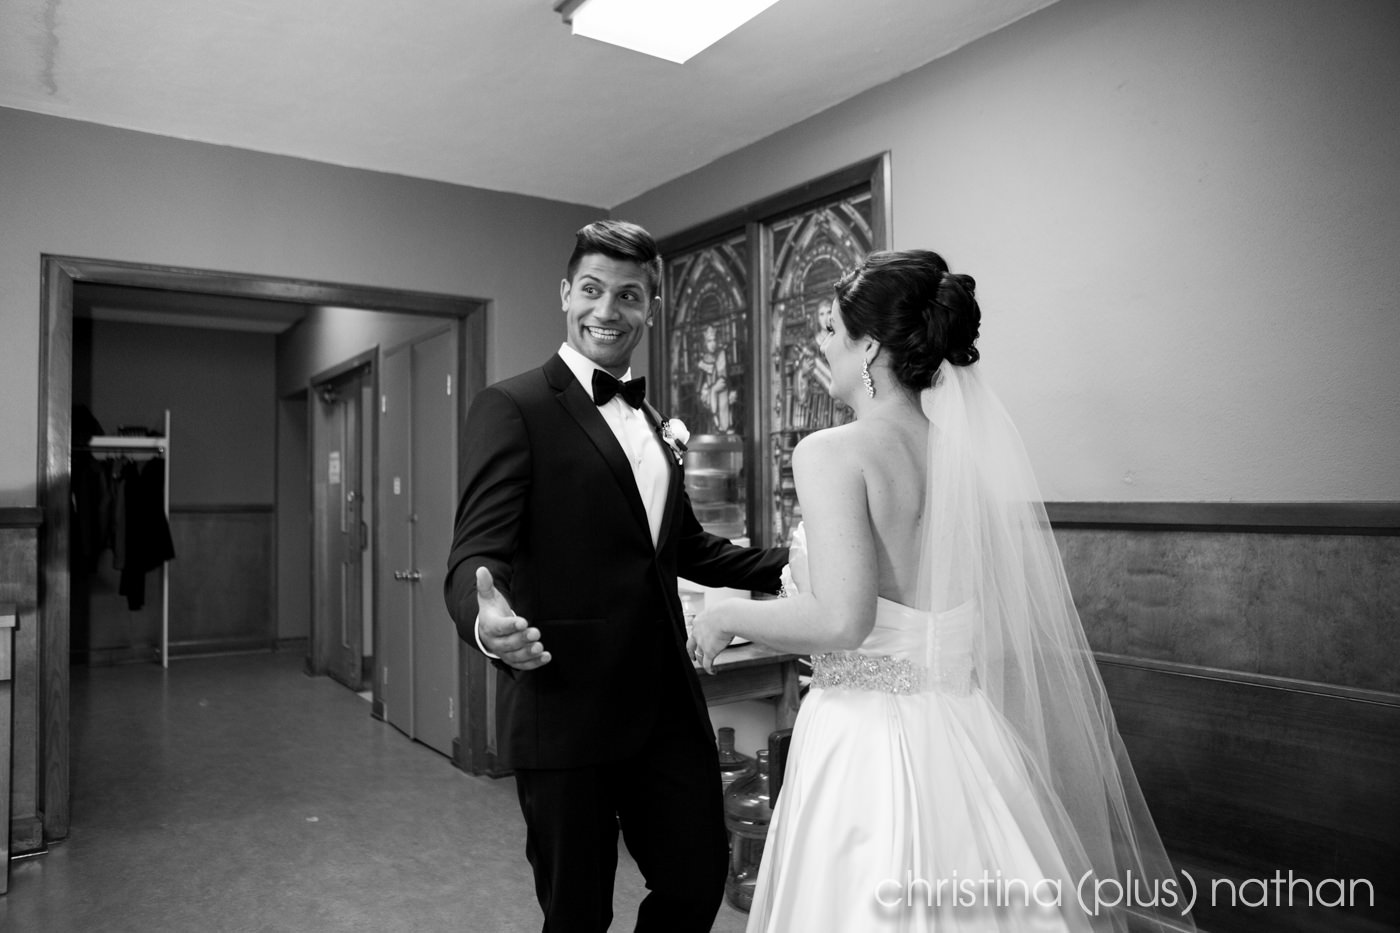 Hyatt-wedding-calgary-photographer-12